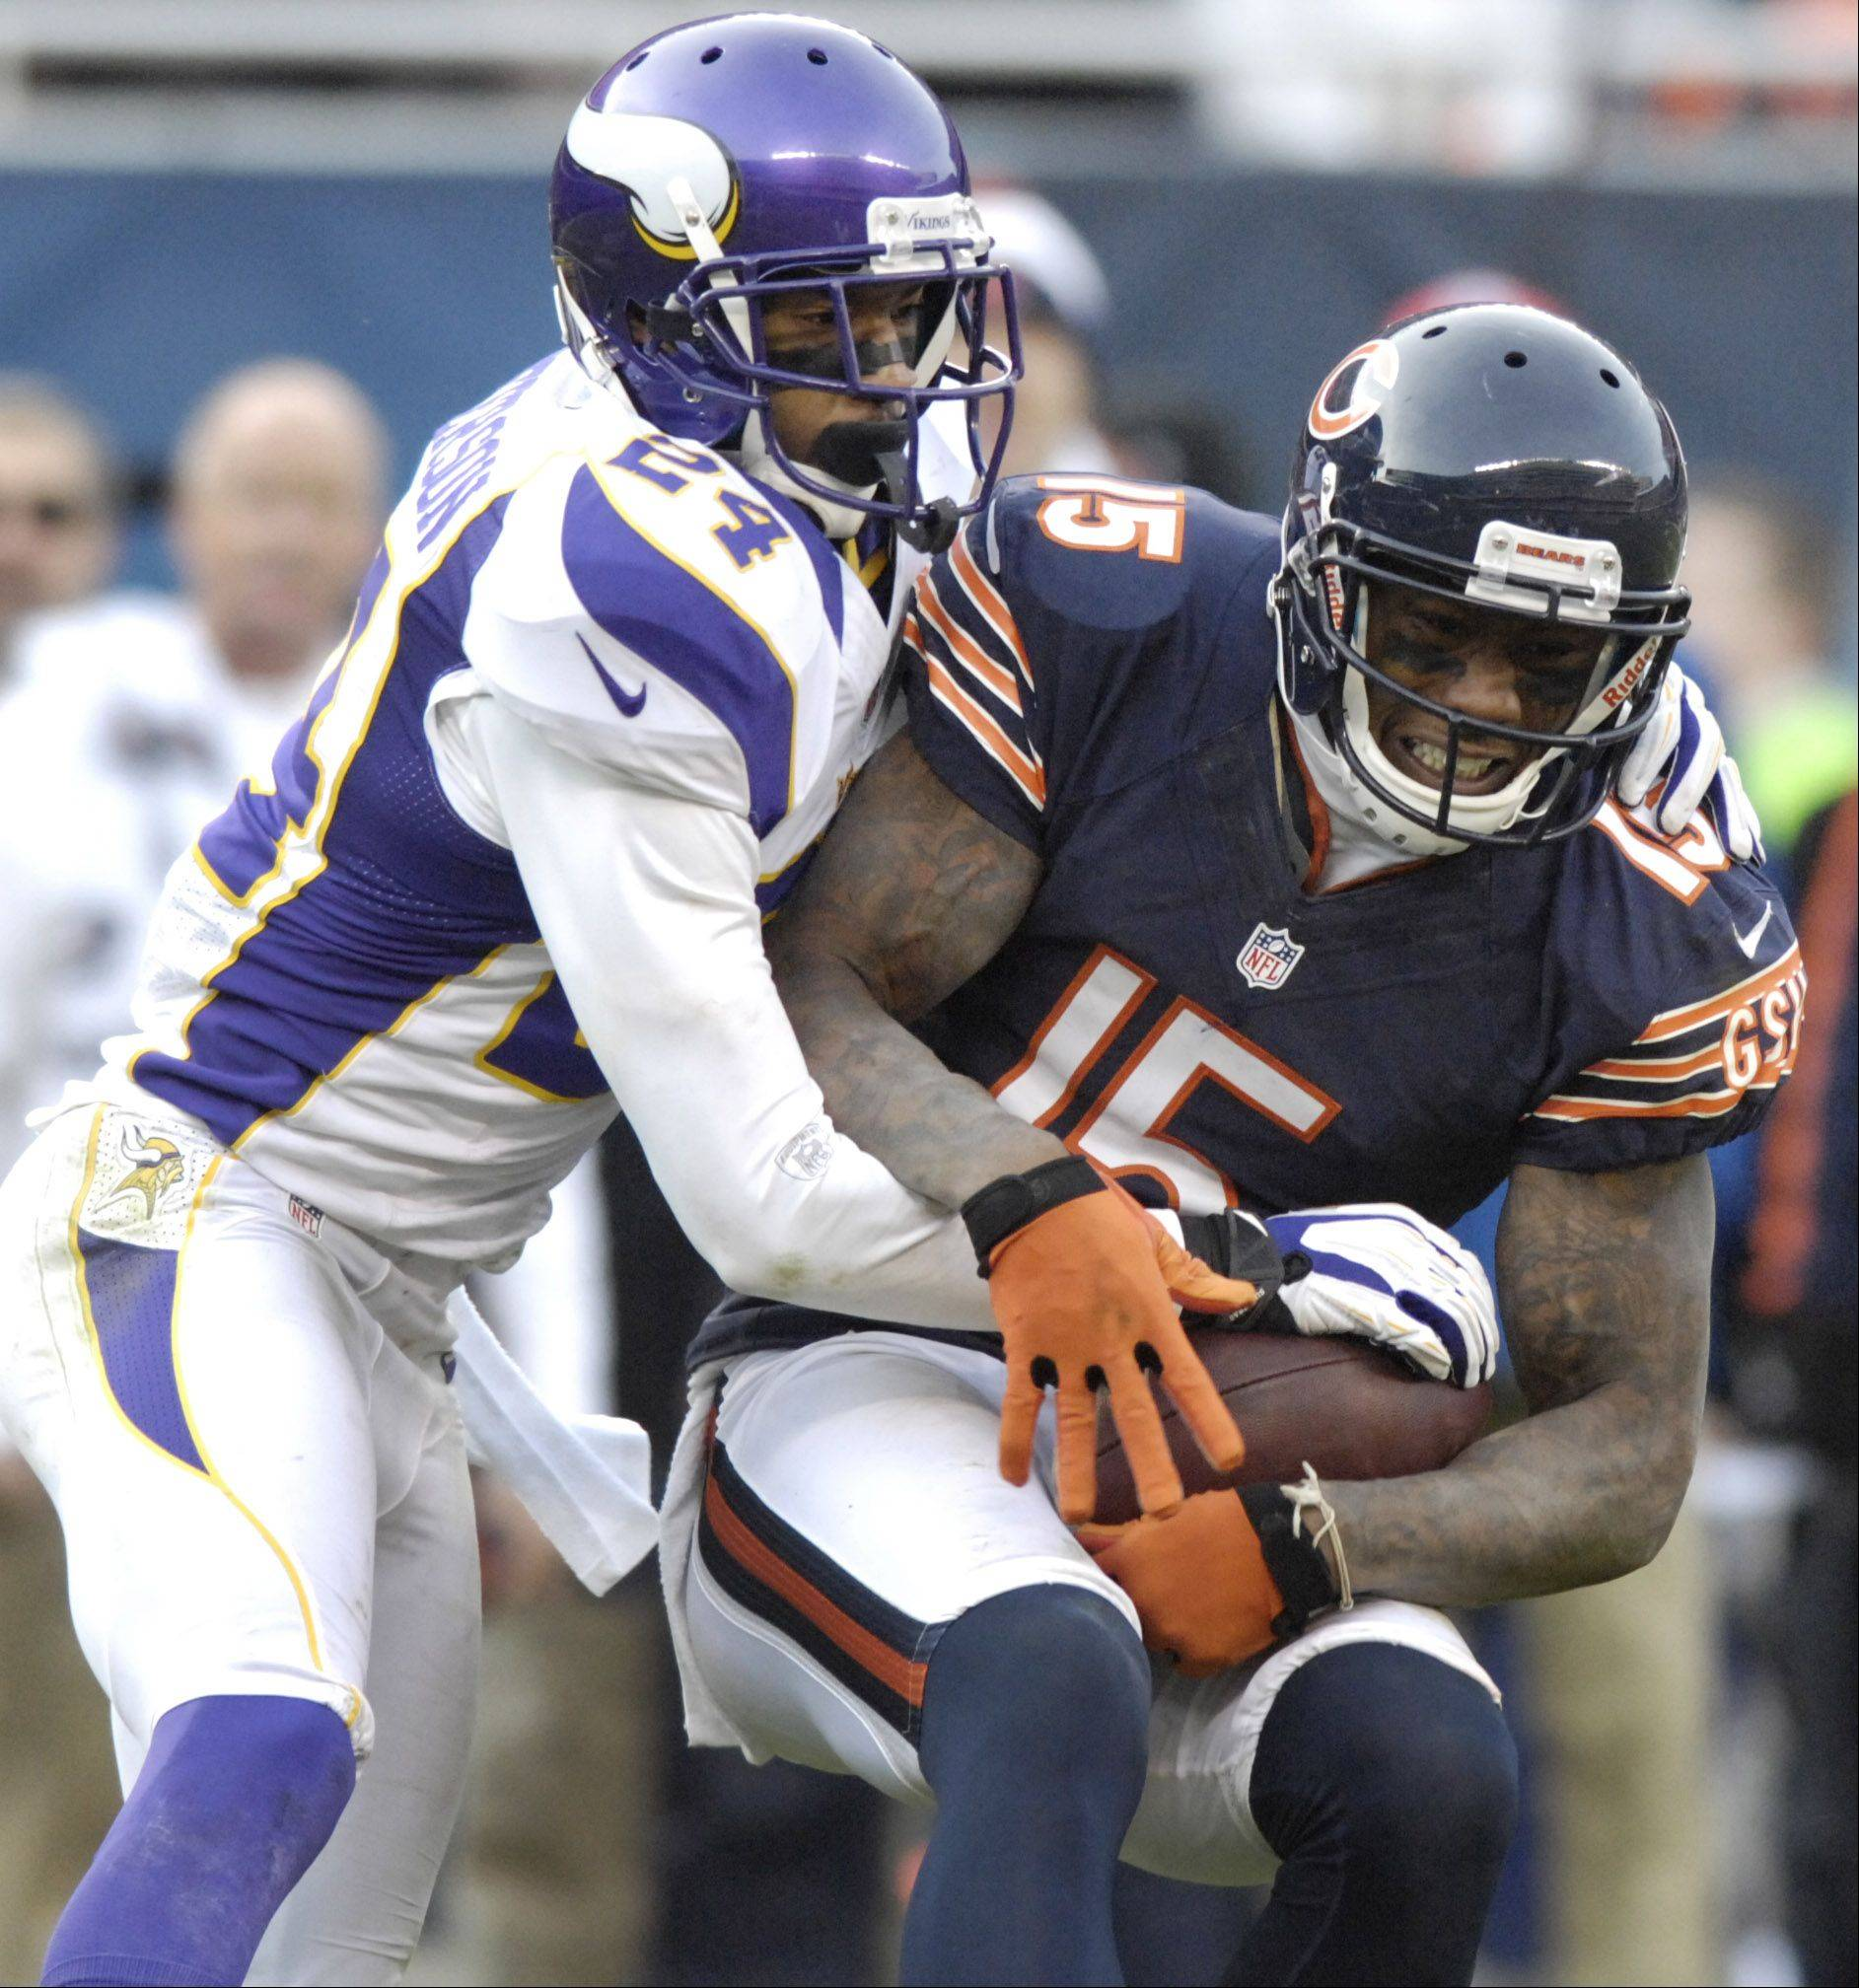 Chicago Bears wide receiver Brandon Marshall makes a catch against the defense of Minnesota Vikings cornerback A.J. Jefferson during the fourth quarter at Soldier Field Sunday.